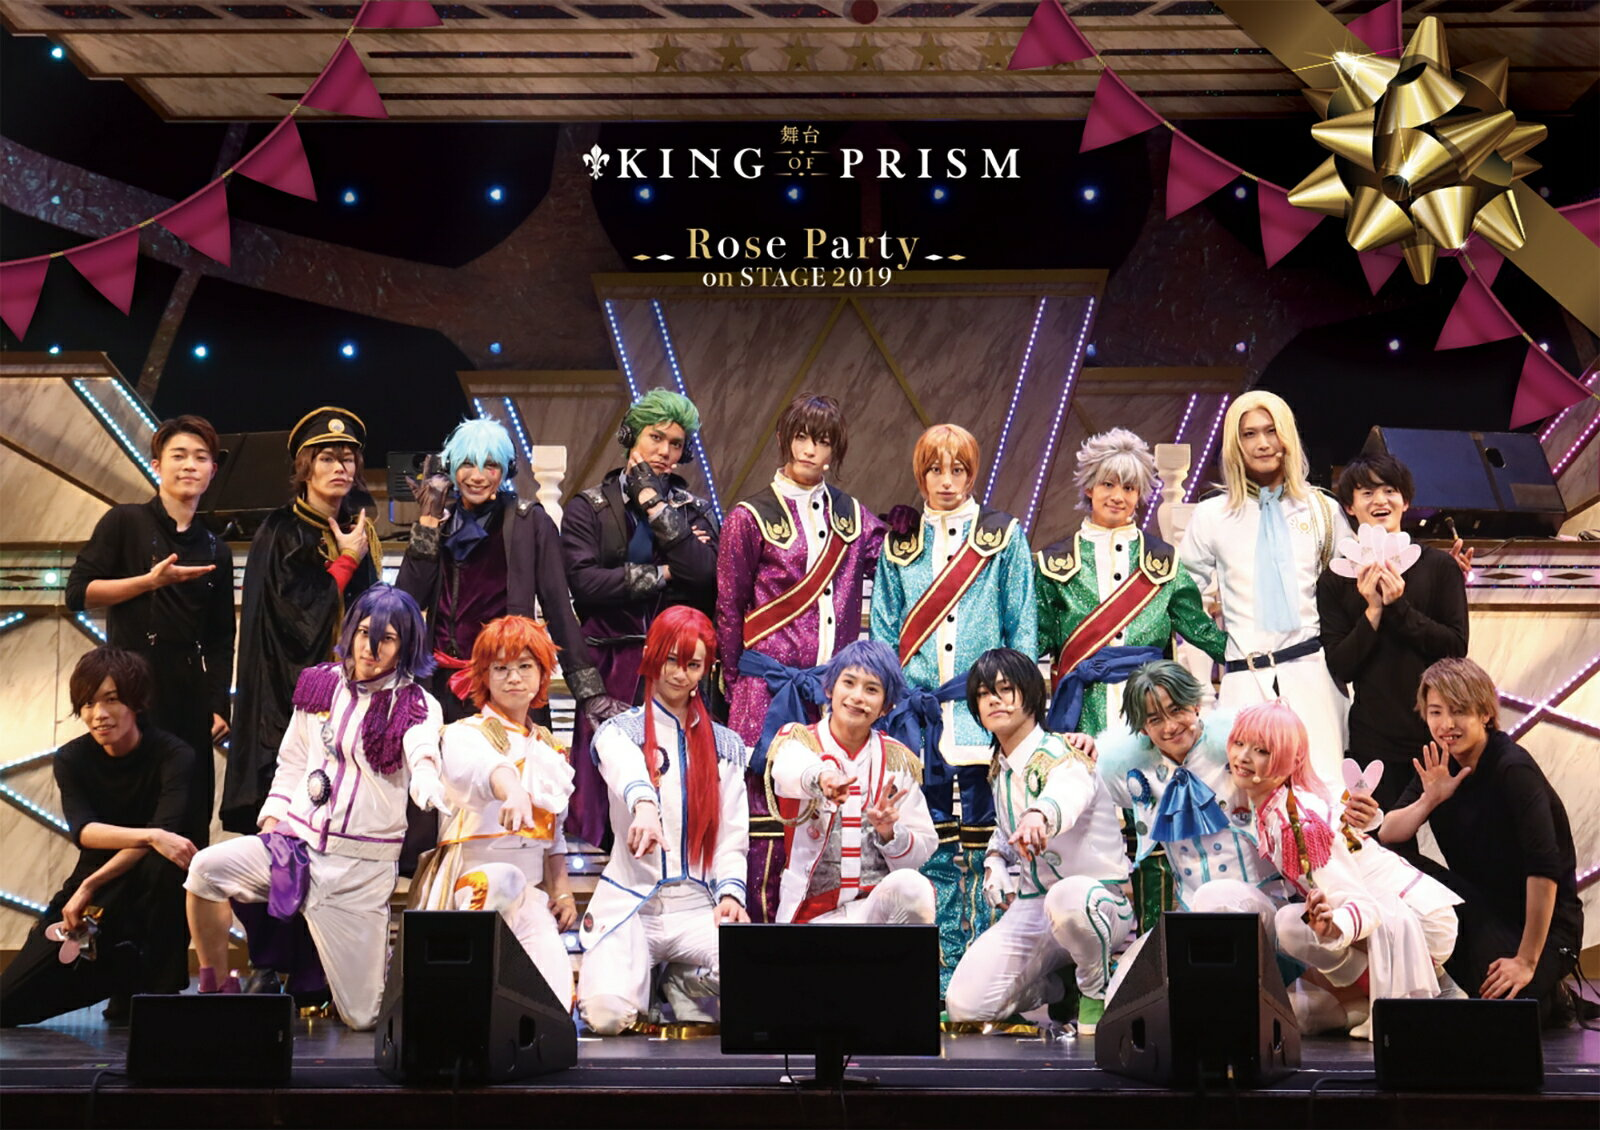 キッズアニメ, その他 KING OF PRISM-Rose Party on STAGE 2019- Blu-ray DiscBlu-ray